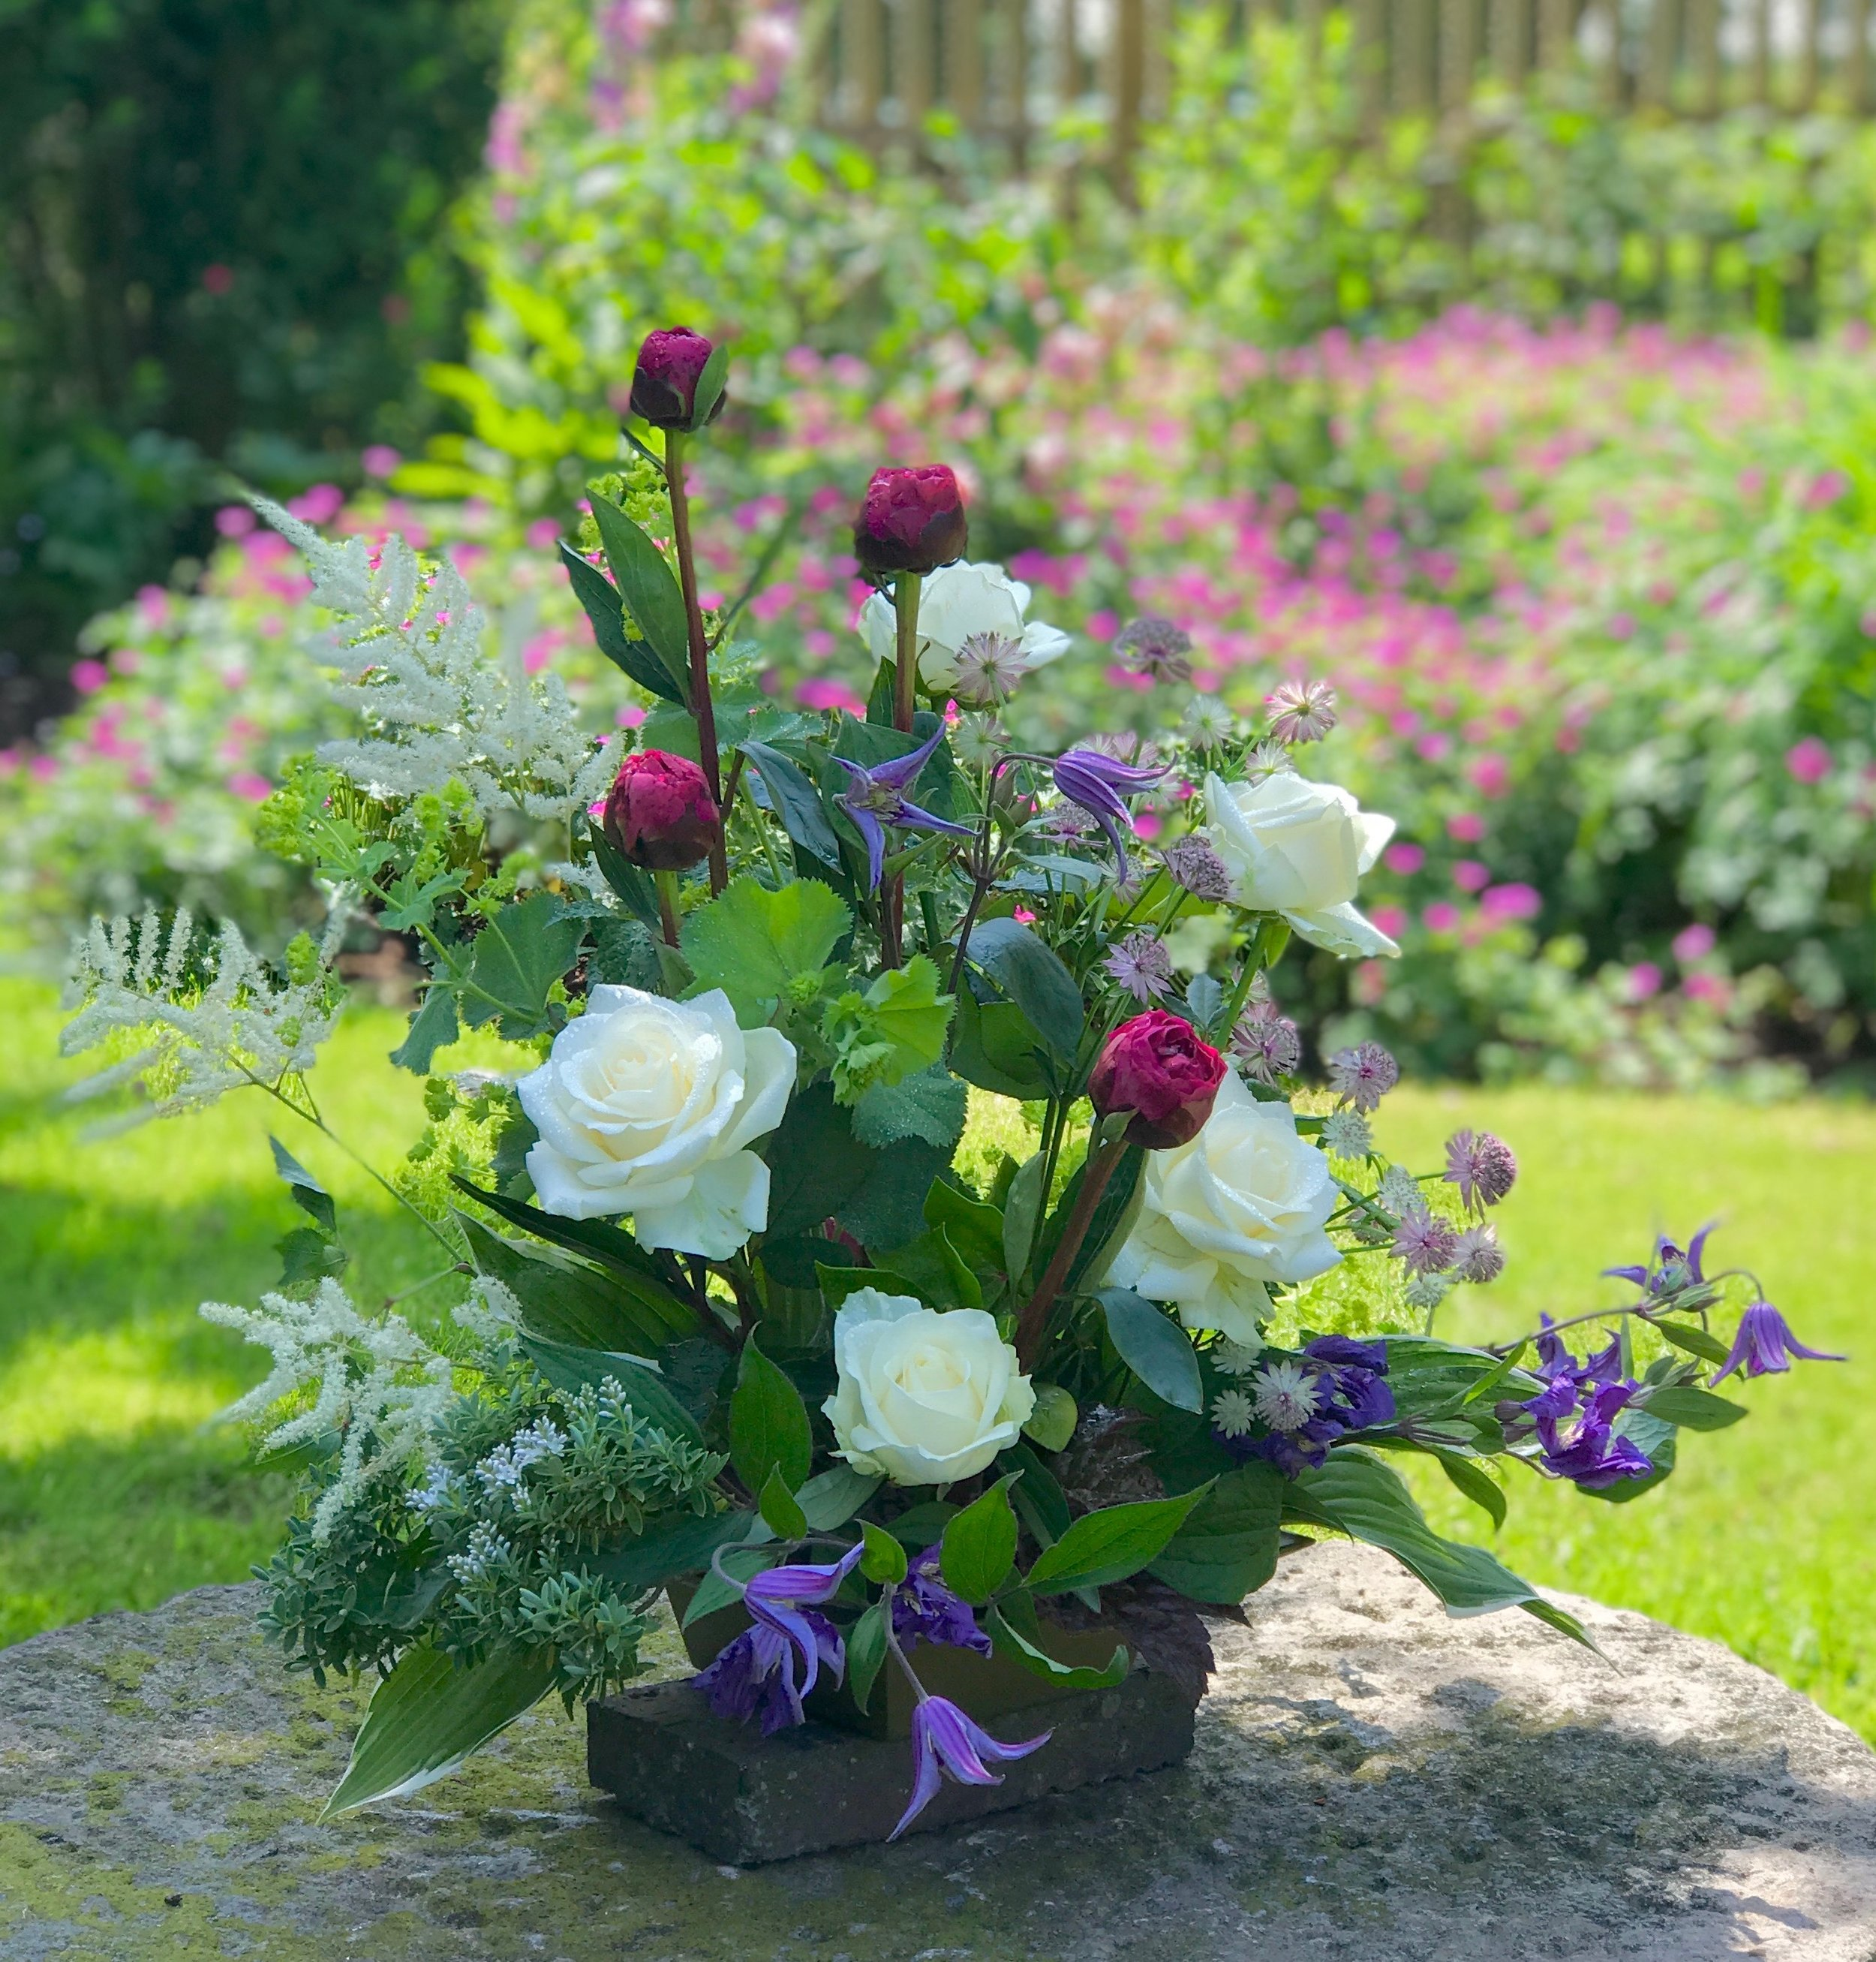 Garden styled Summer arrangement.  (Colours and materials may vary, depends on availability)